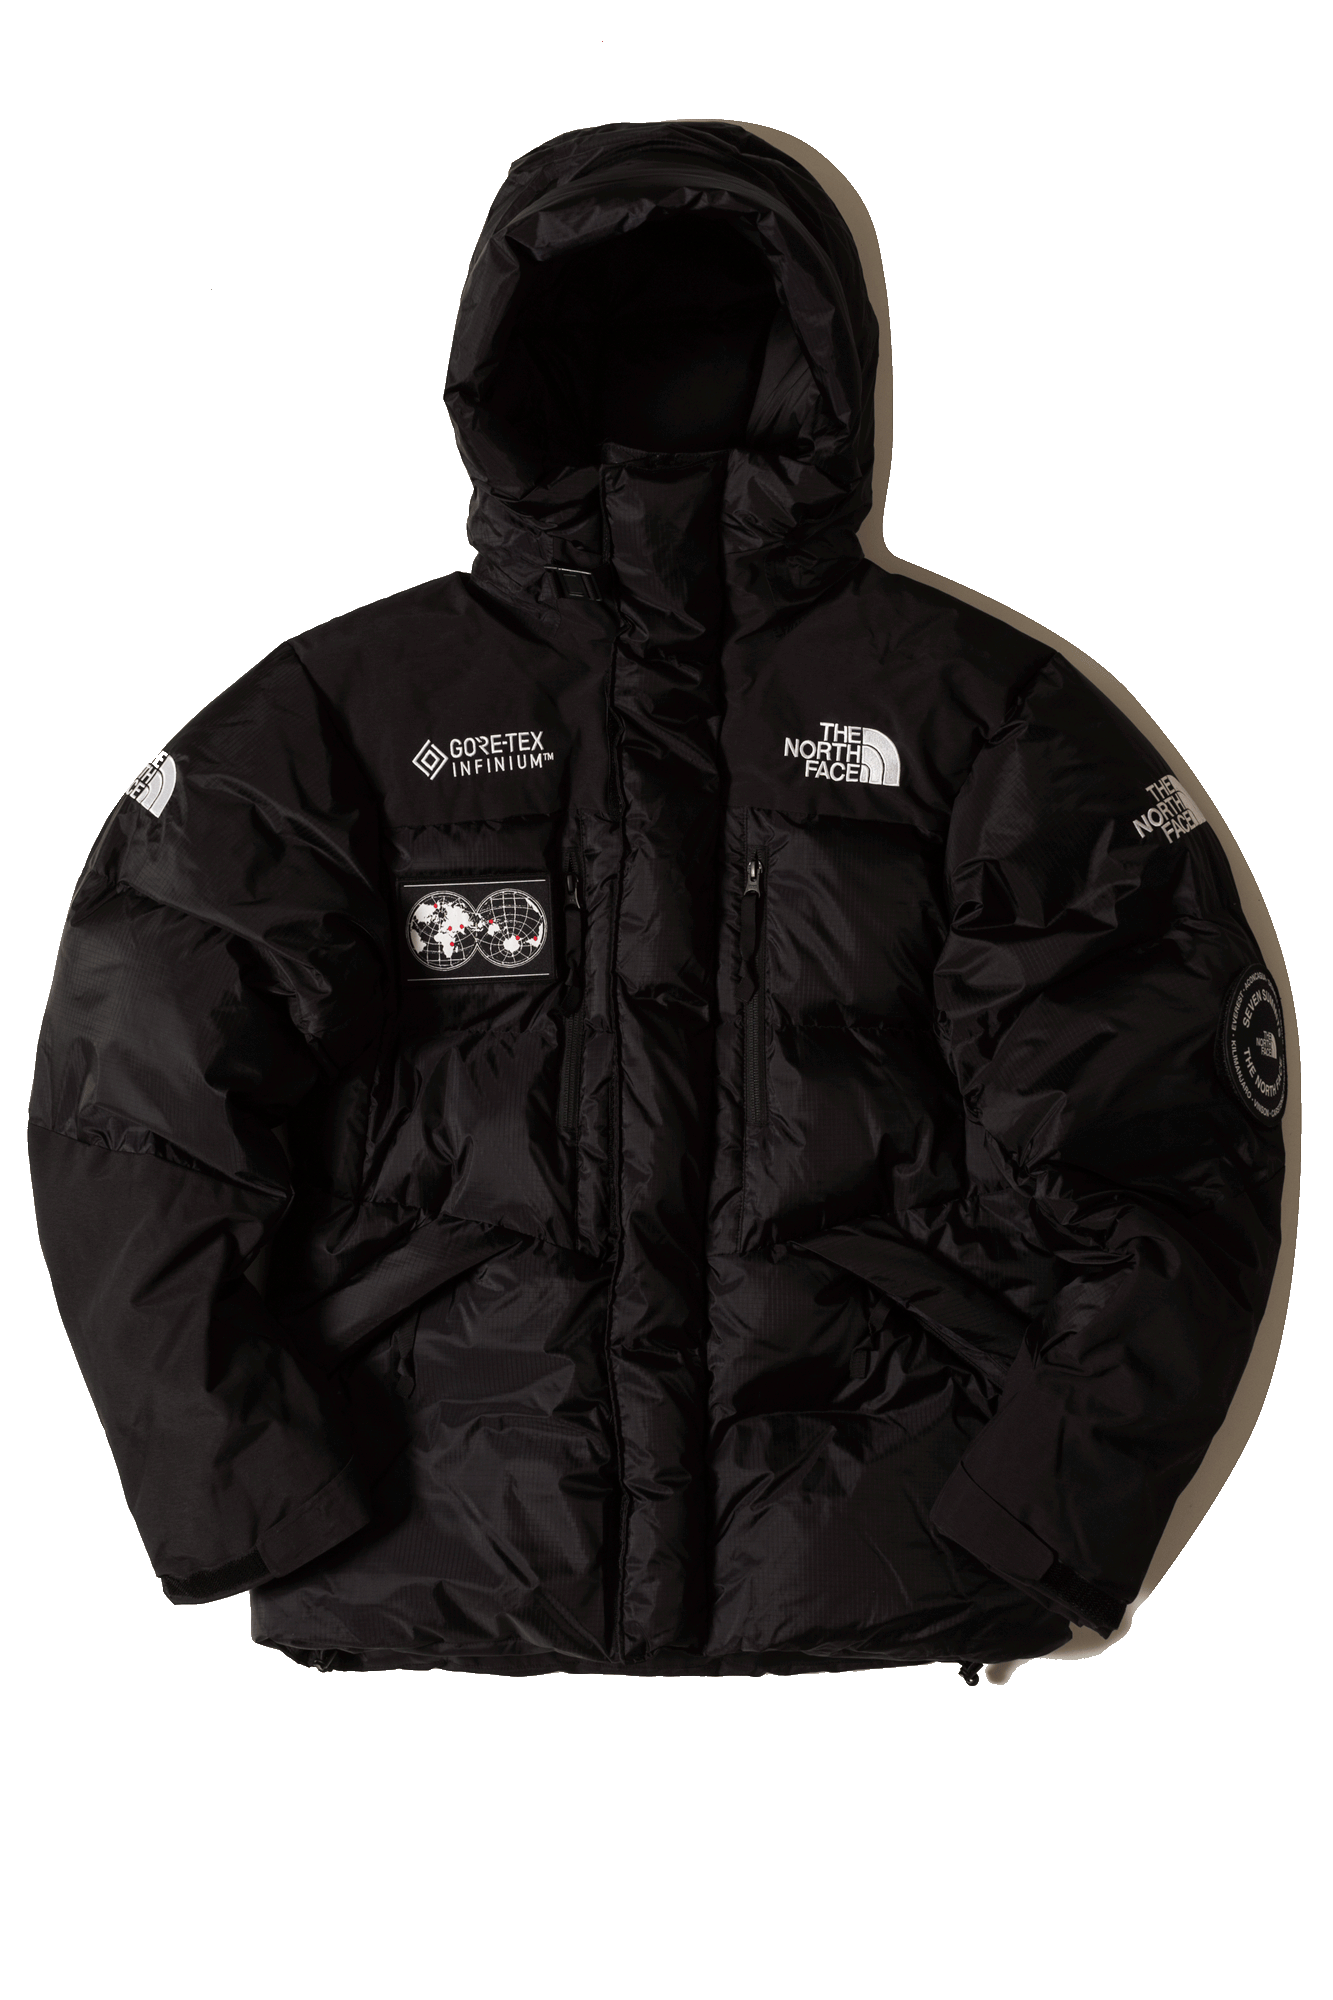 The North Face Coats & Jackets 7SE Himalayan Parka GTX Black T93MJBJK3#000#JK3#XS - One Block Down